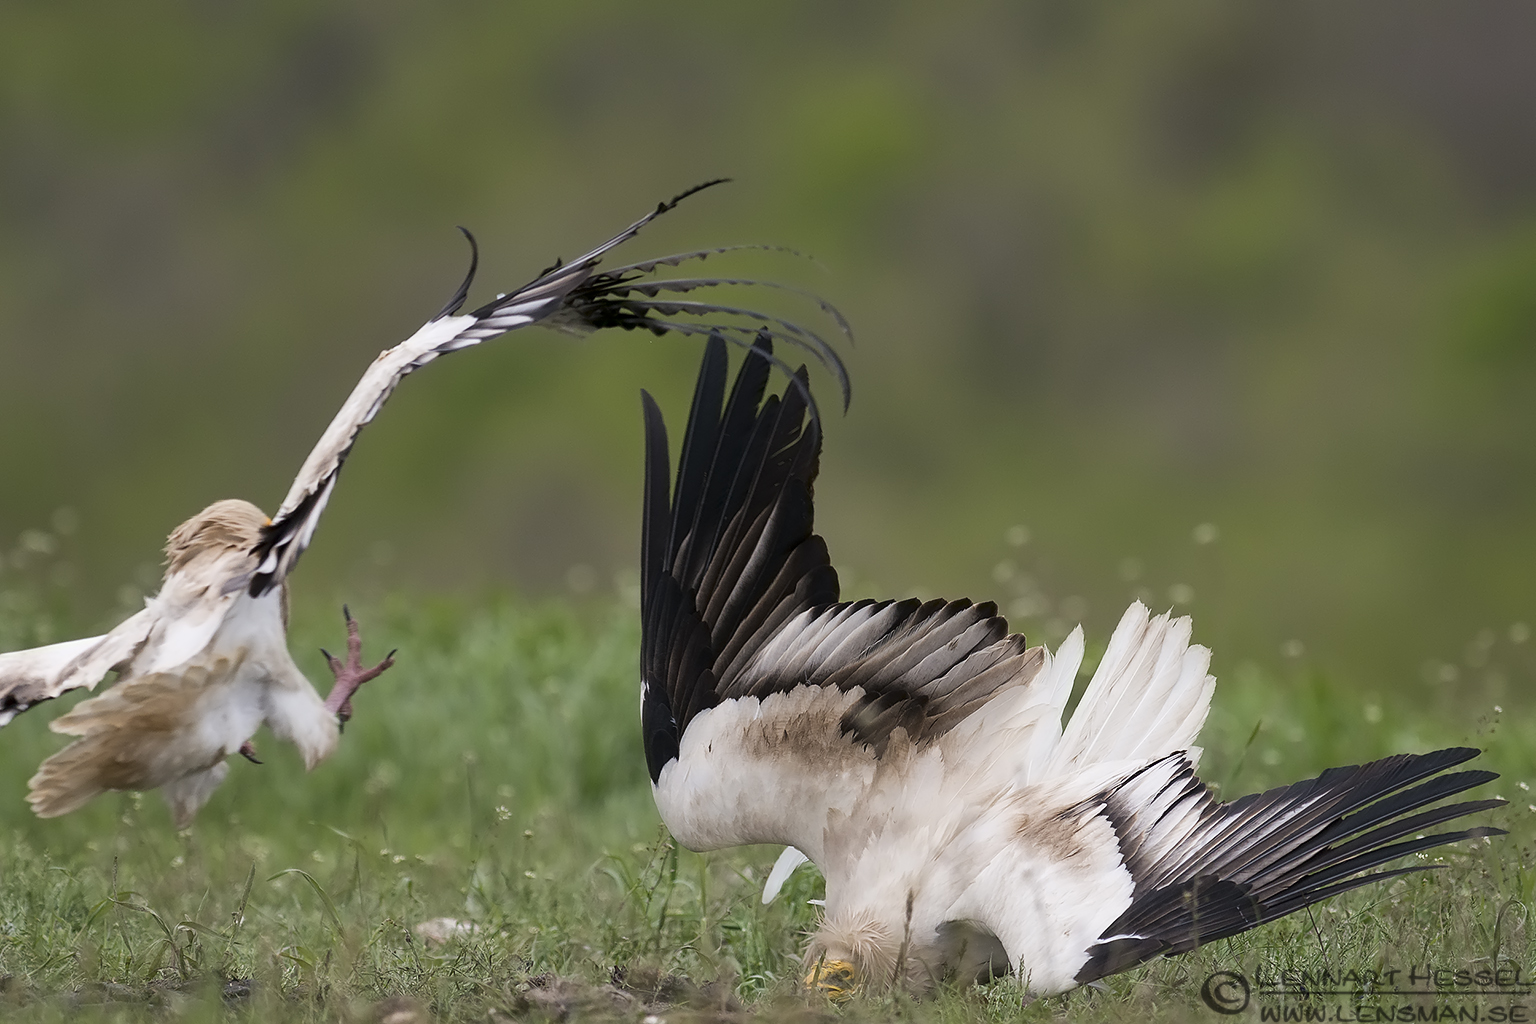 Egyptian Vulture avoiding an attack in Bulgaria